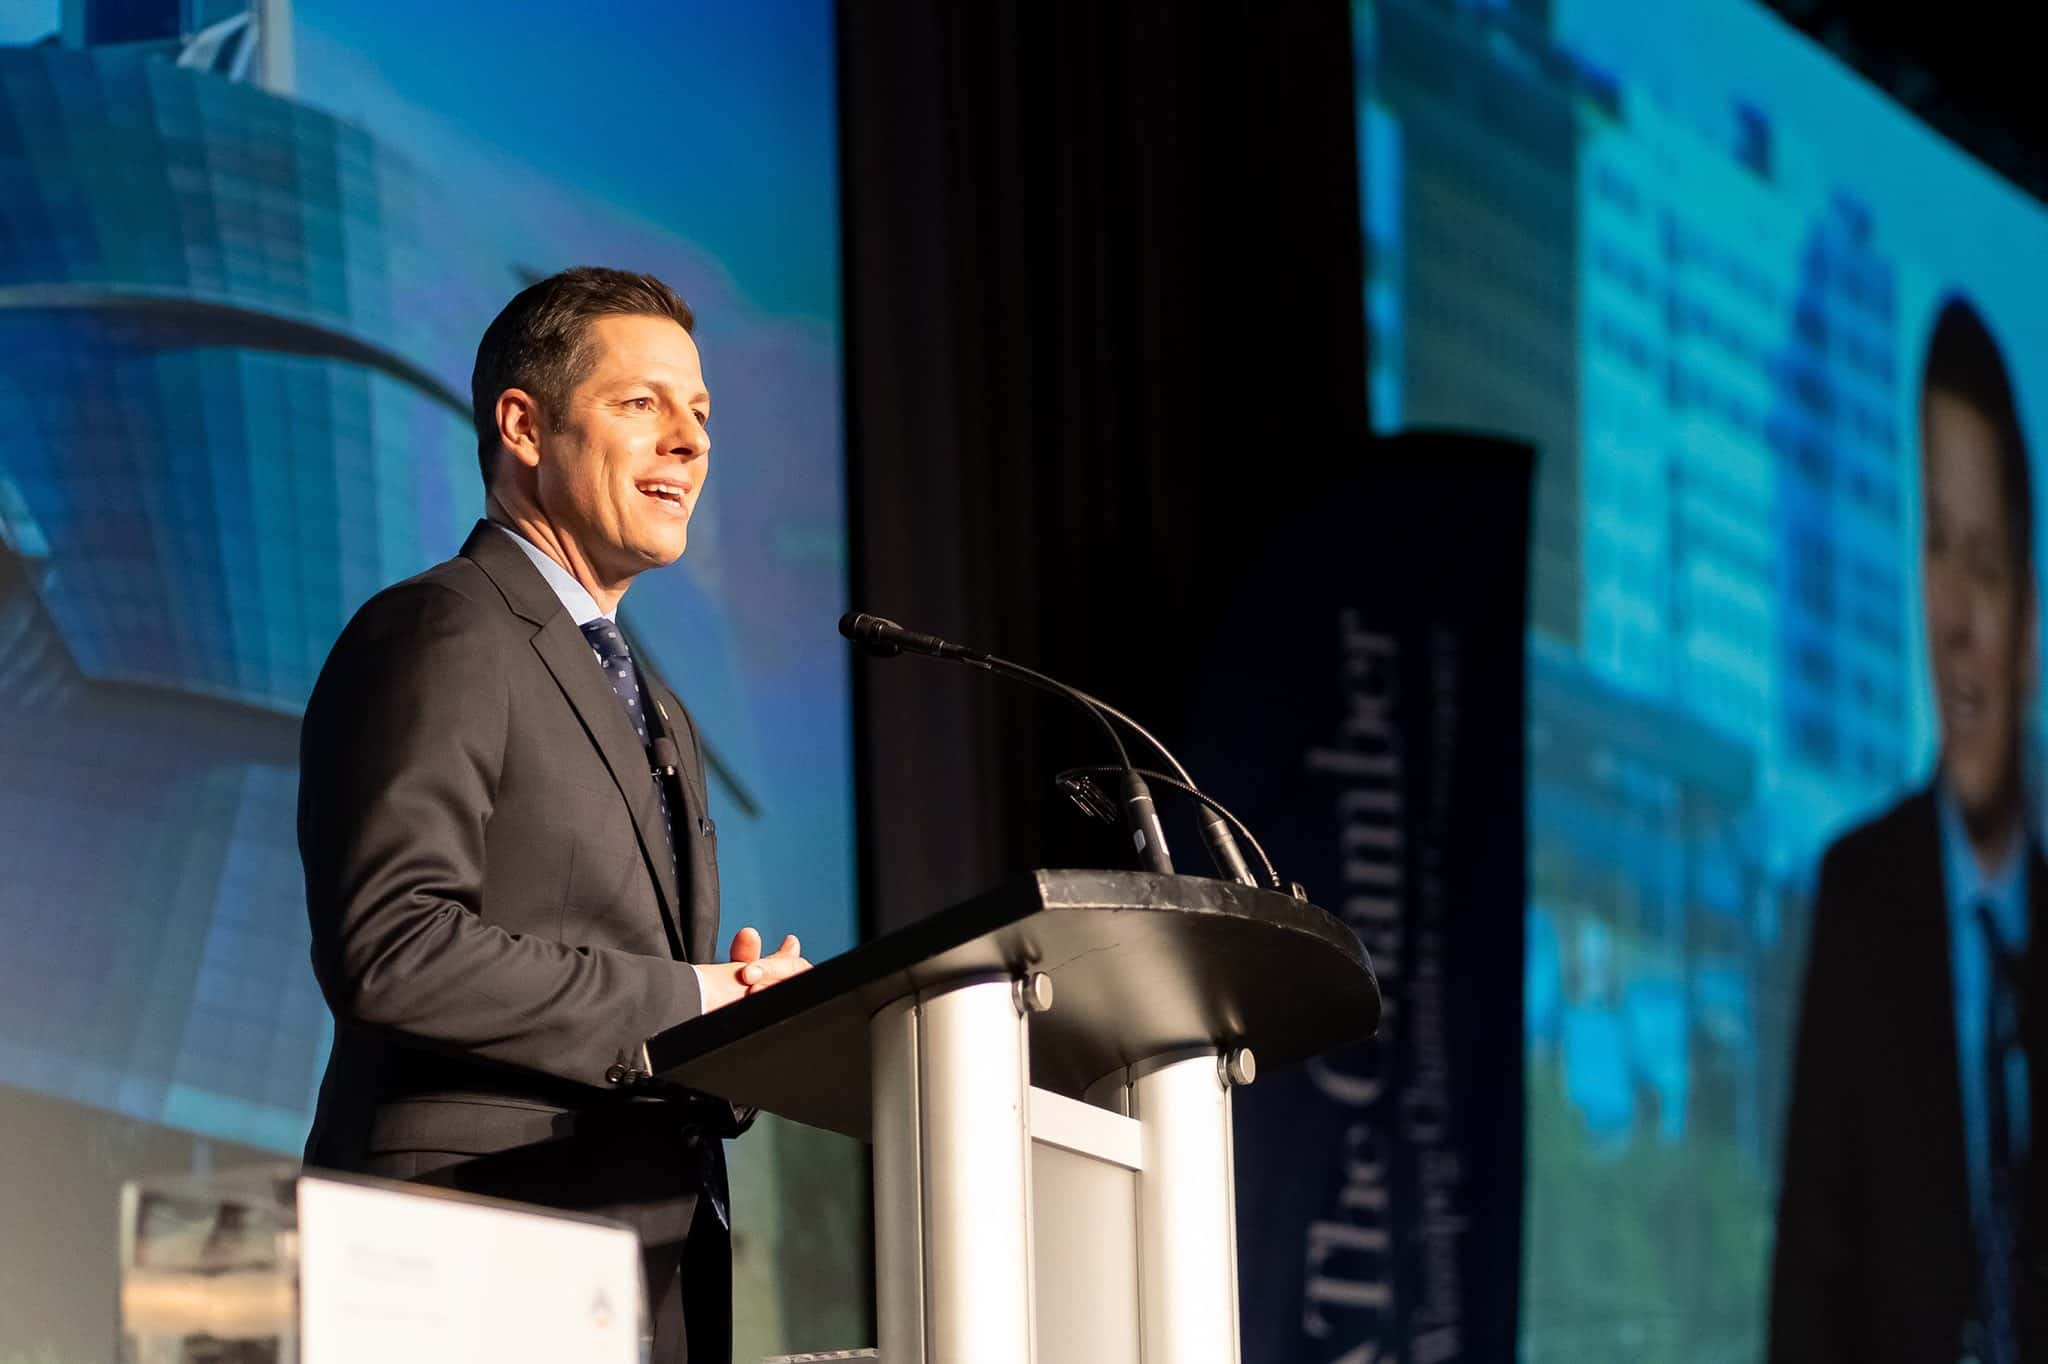 Mayor Bowman addresses the crowd at the State of the City.